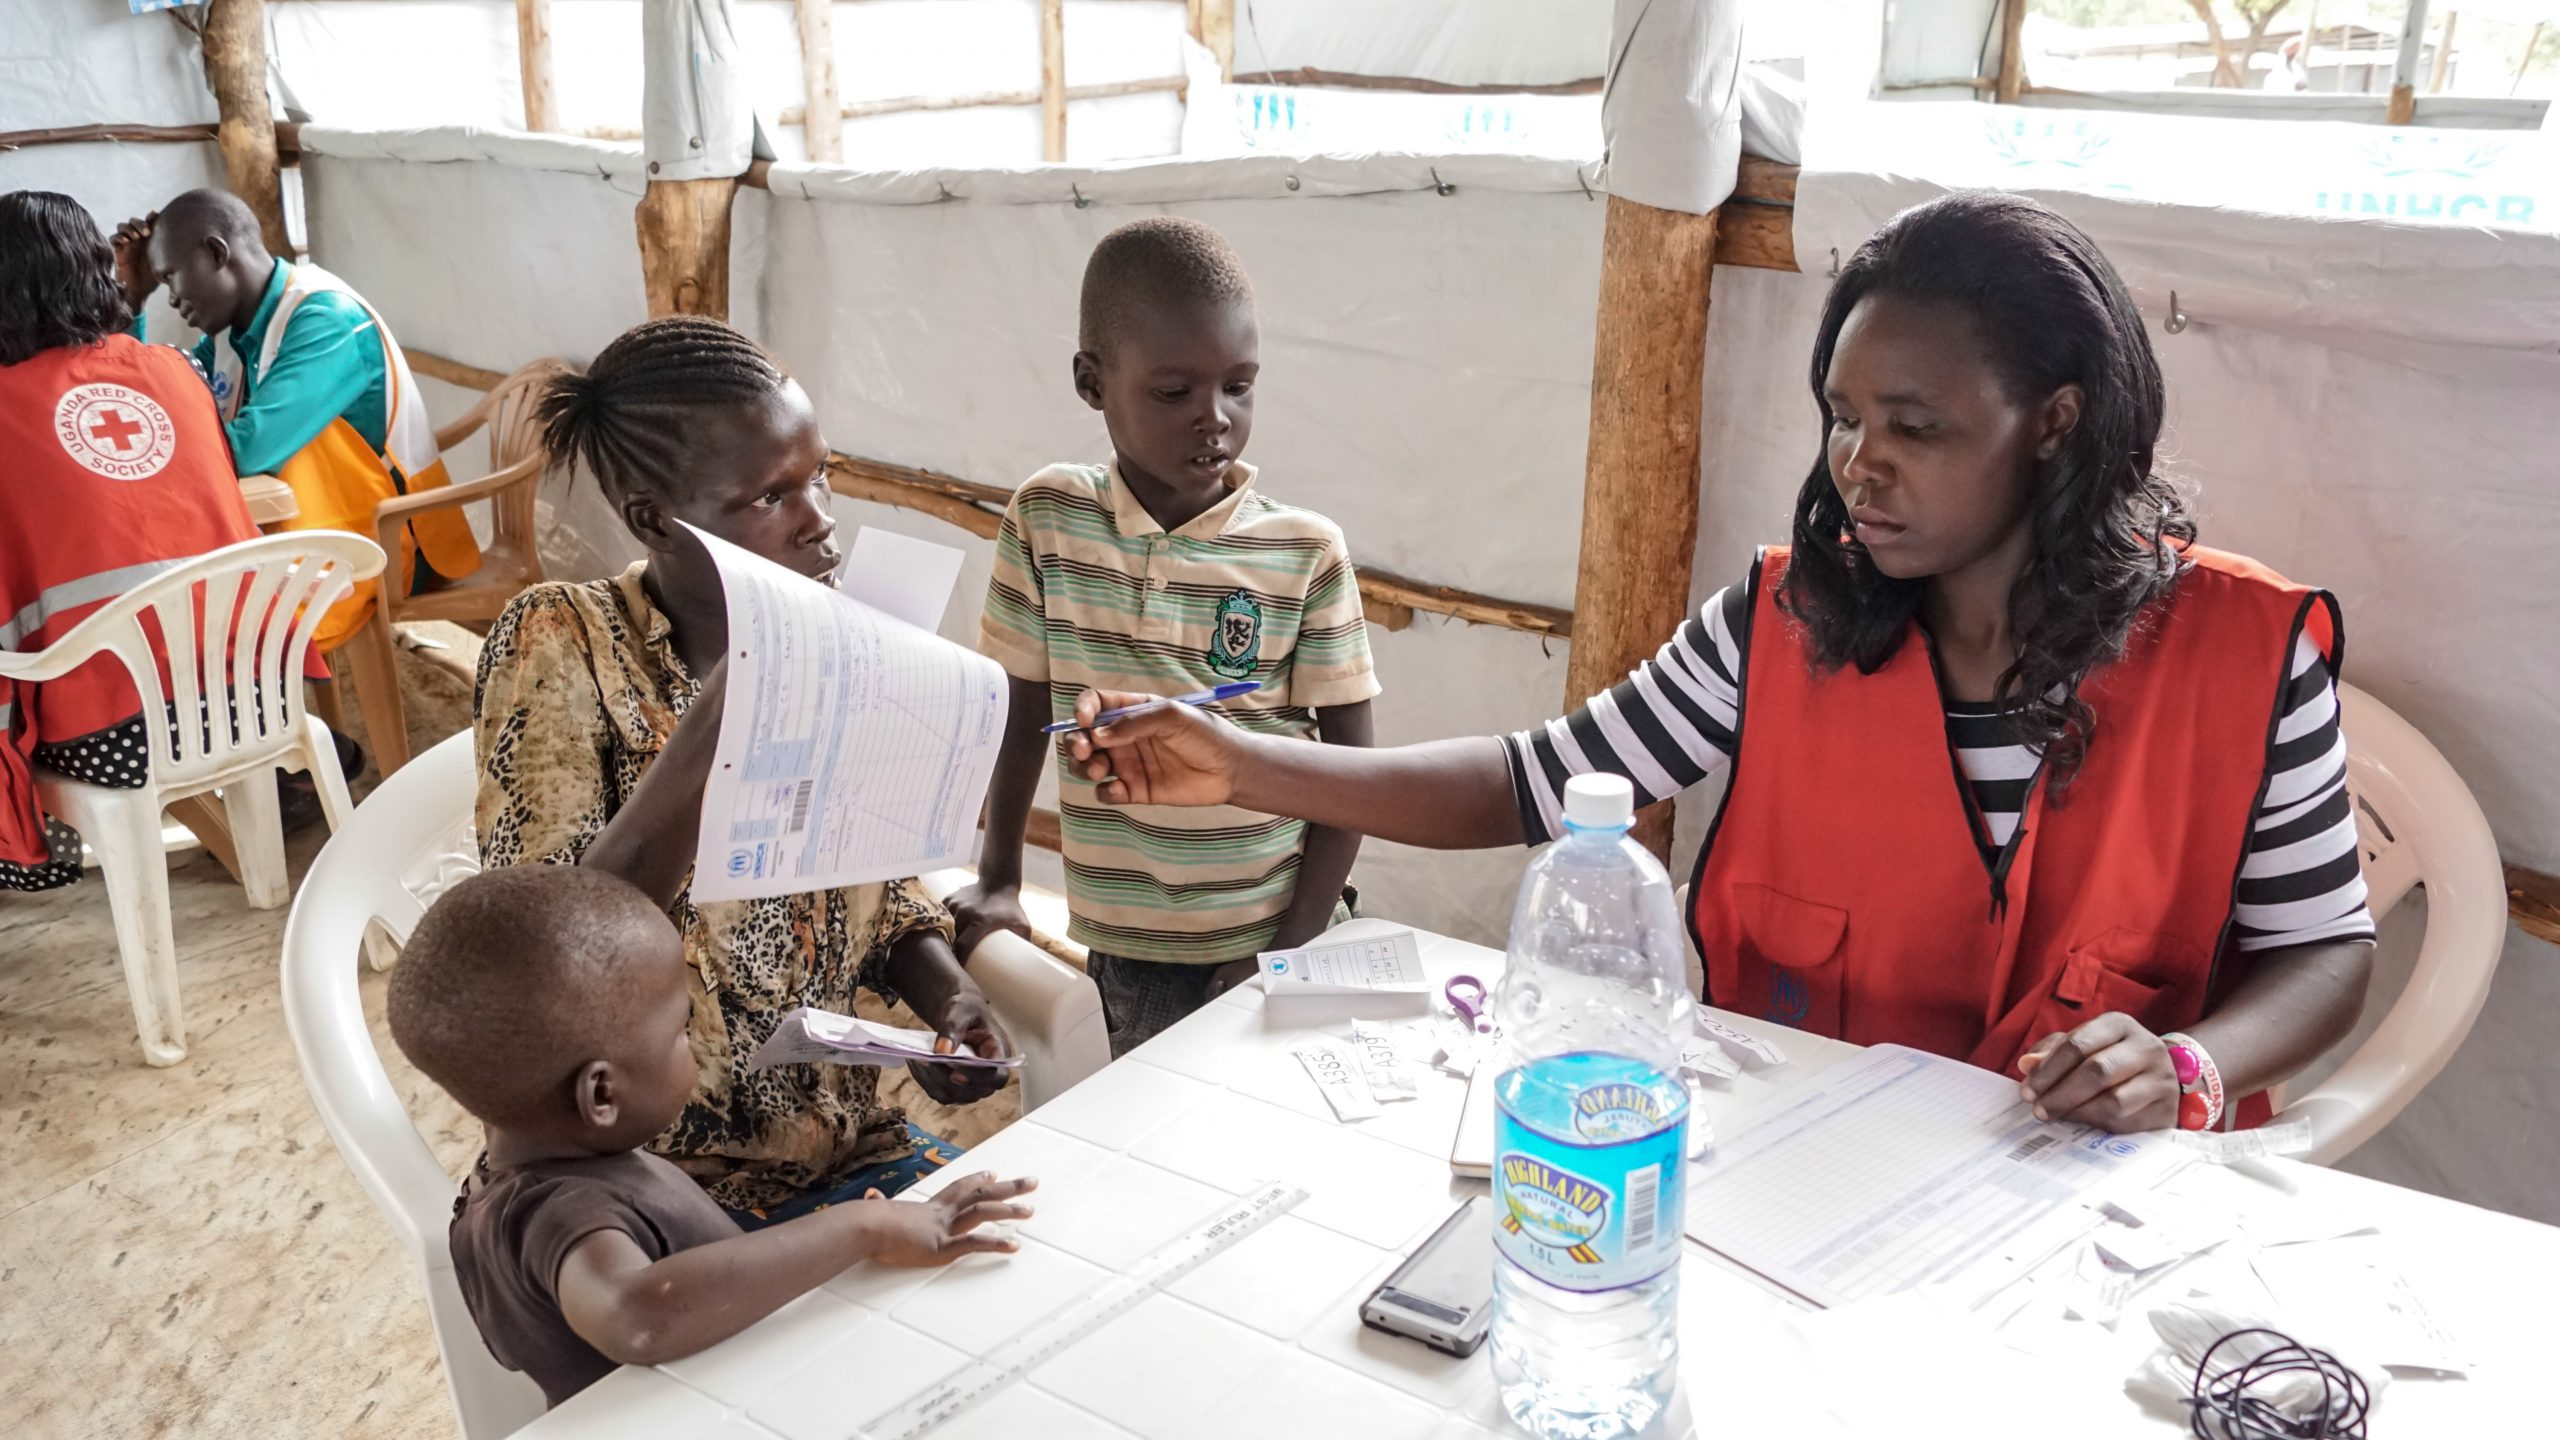 Imvepi Refugee Camp in Uganda: Registration process of South Sudanese refugees.